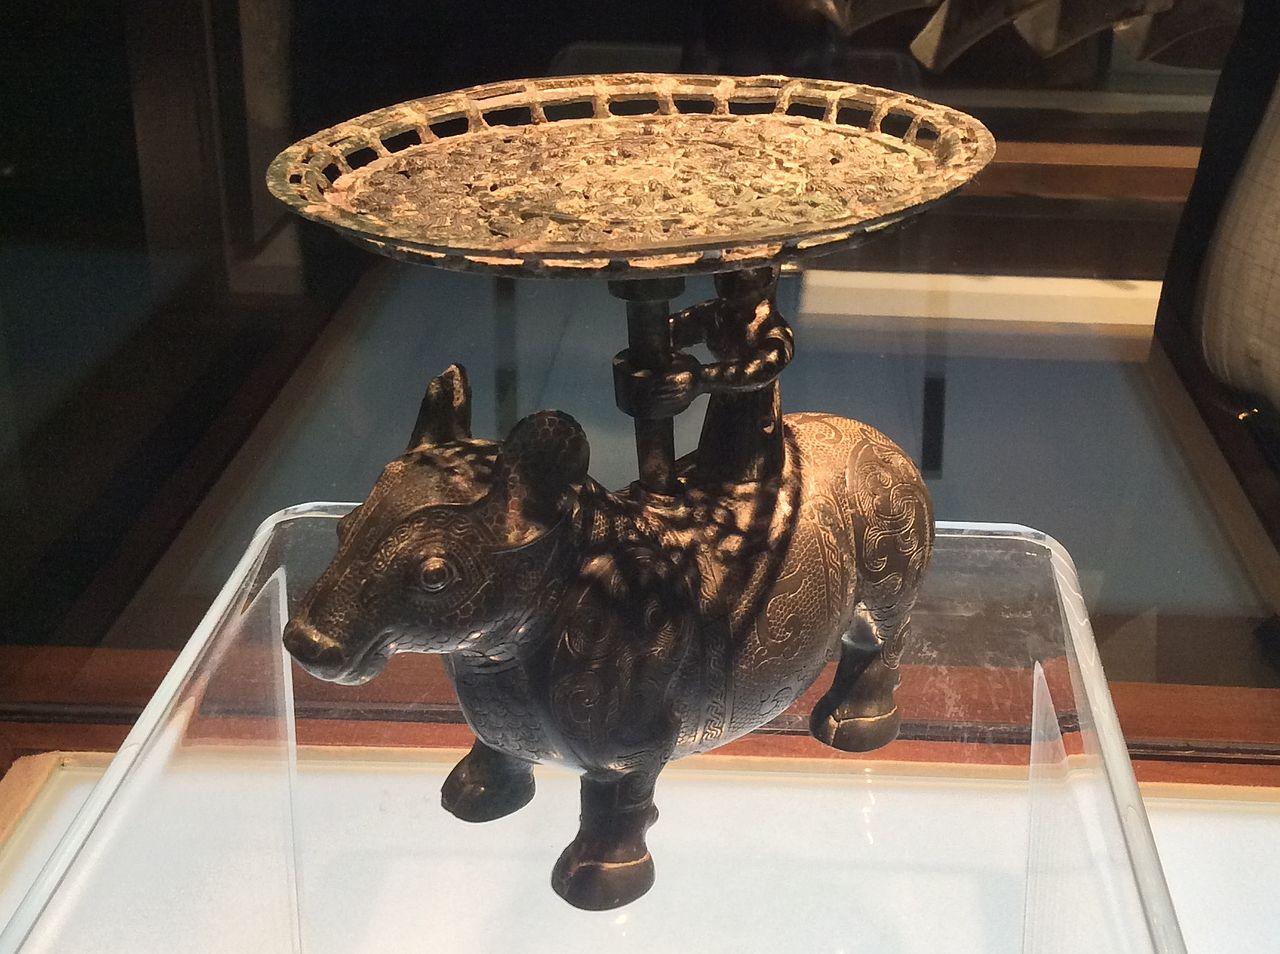 Shanxi_Museum_-_bronze_ox_with_a_man_standing_on_the_back_and_holding_a_plate.JPG